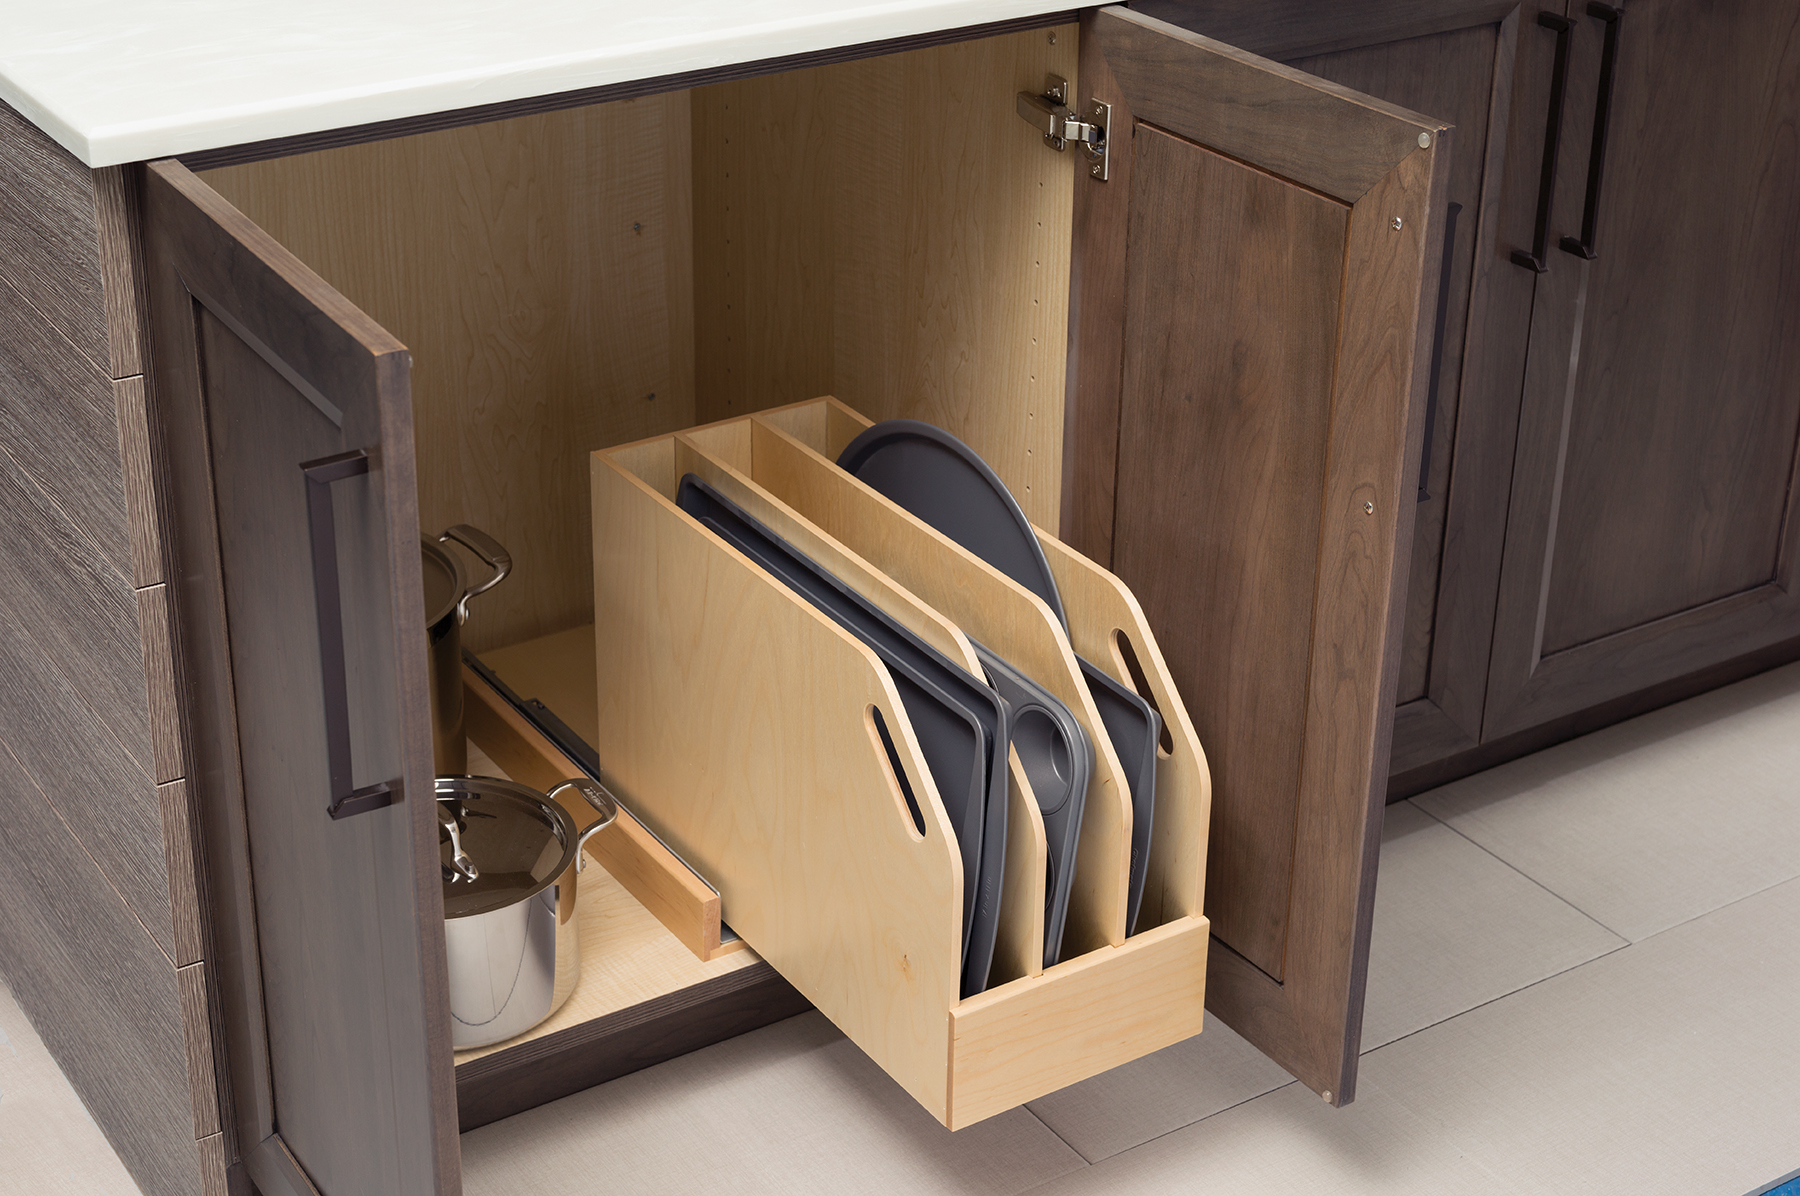 Tray Divider Pull-Out